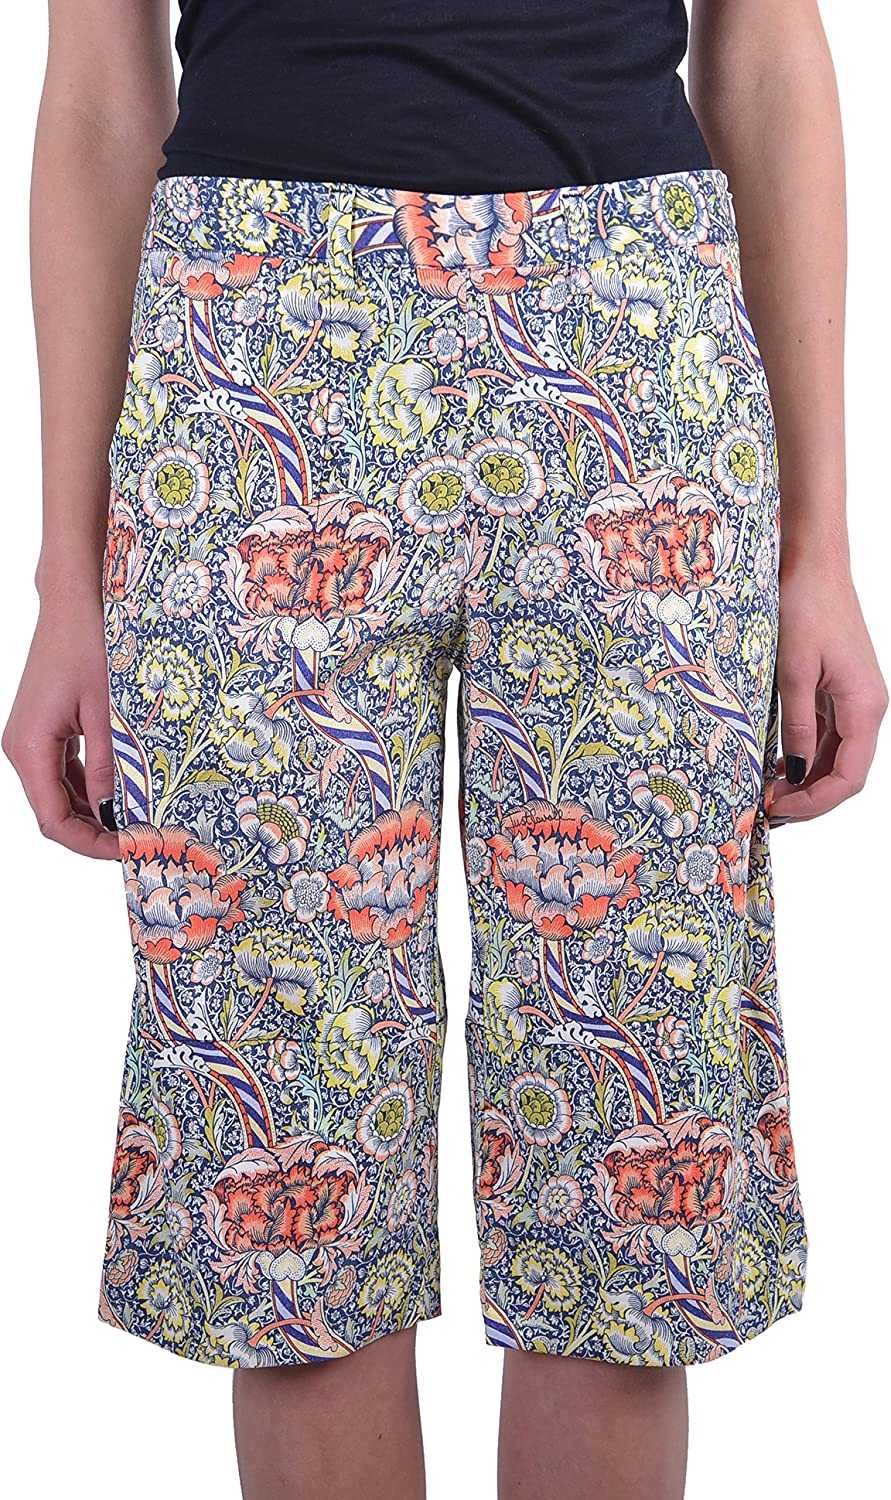 Just Cavalli Women's Multicolor Flat Front Casual Shorts US 4 IT 40